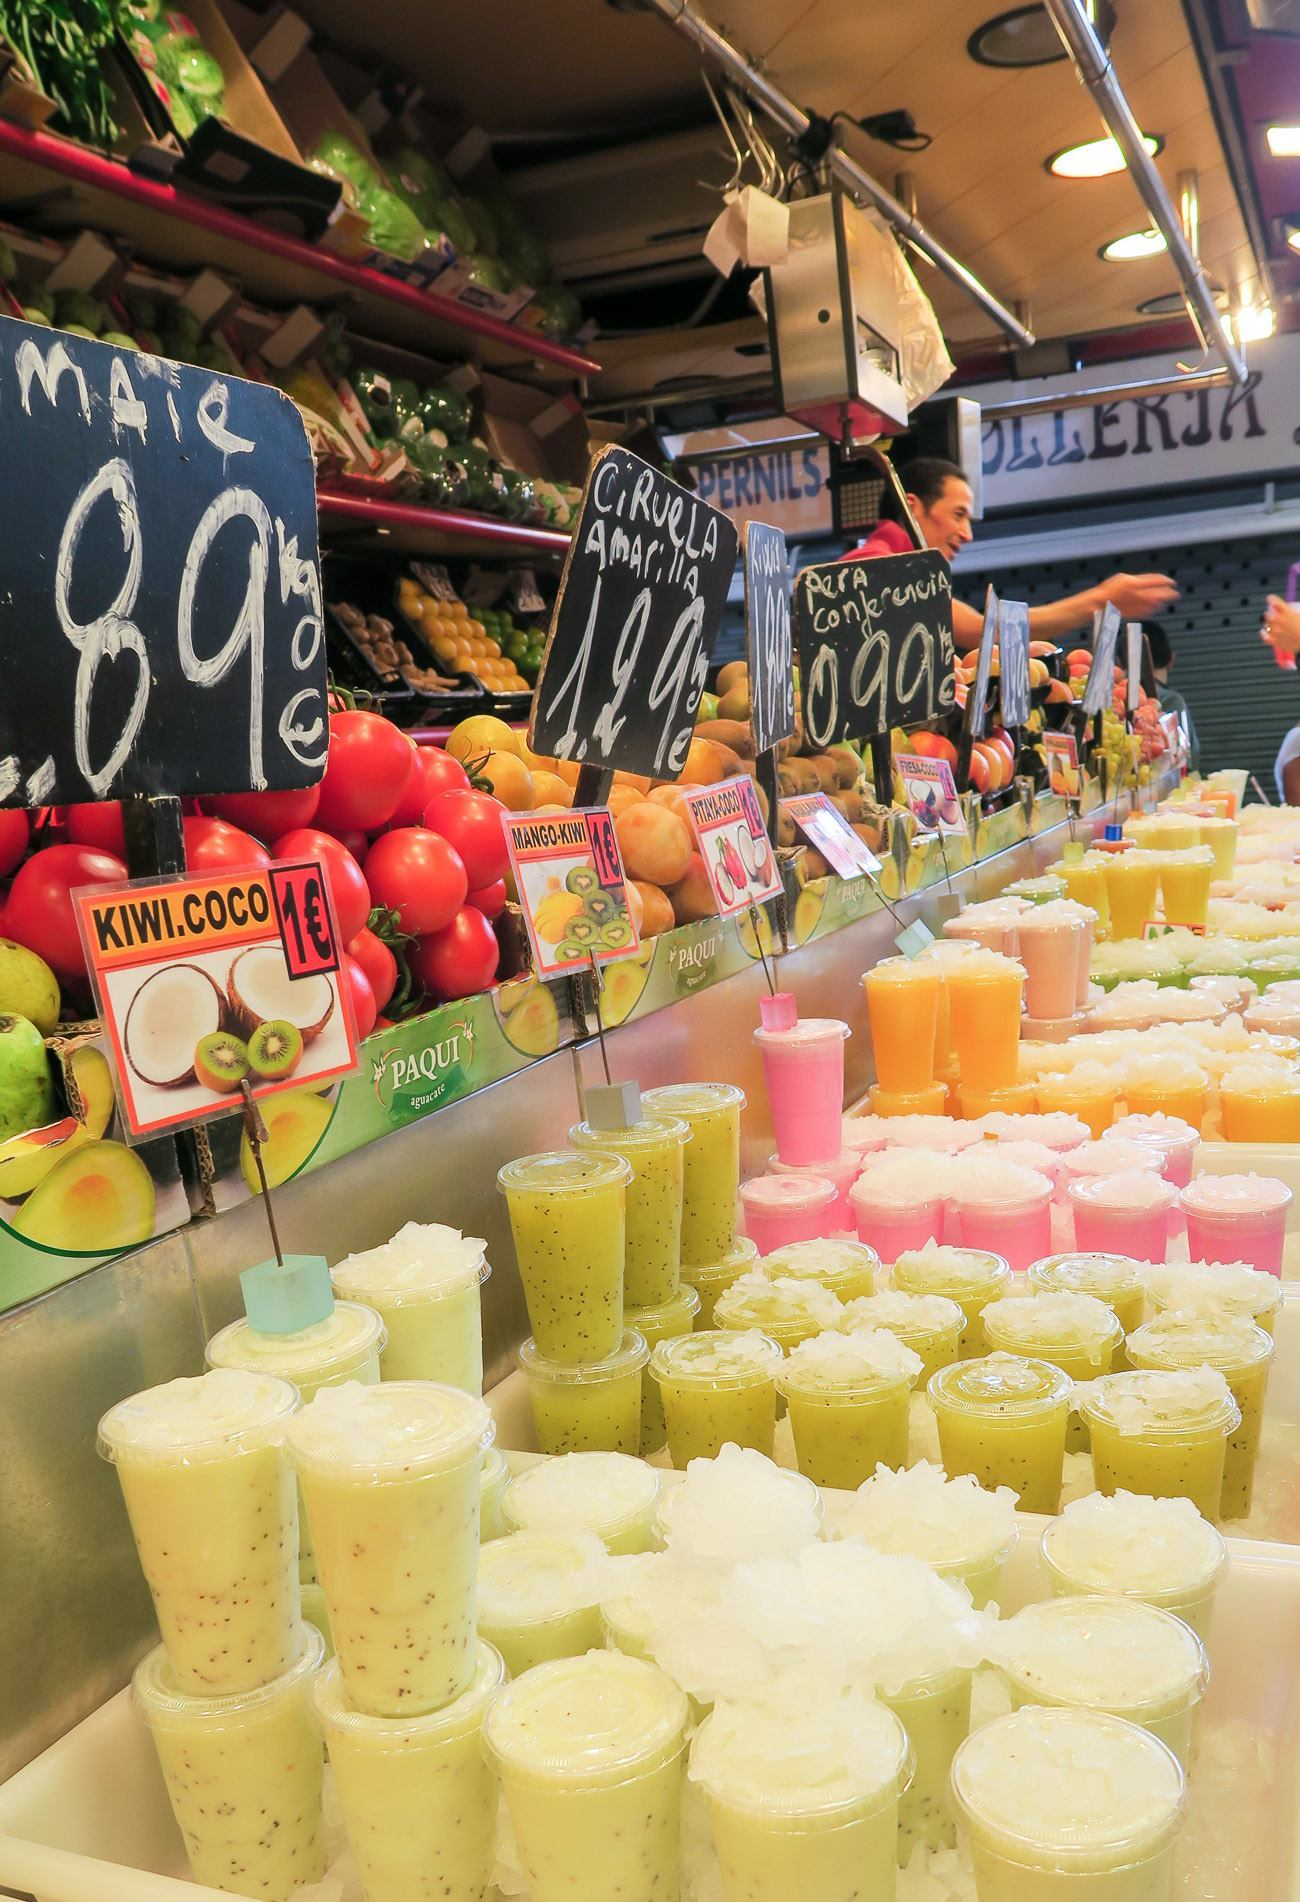 Fresh juice in a variety of flavors is sold all over La Boqueria Market in Barcelona.